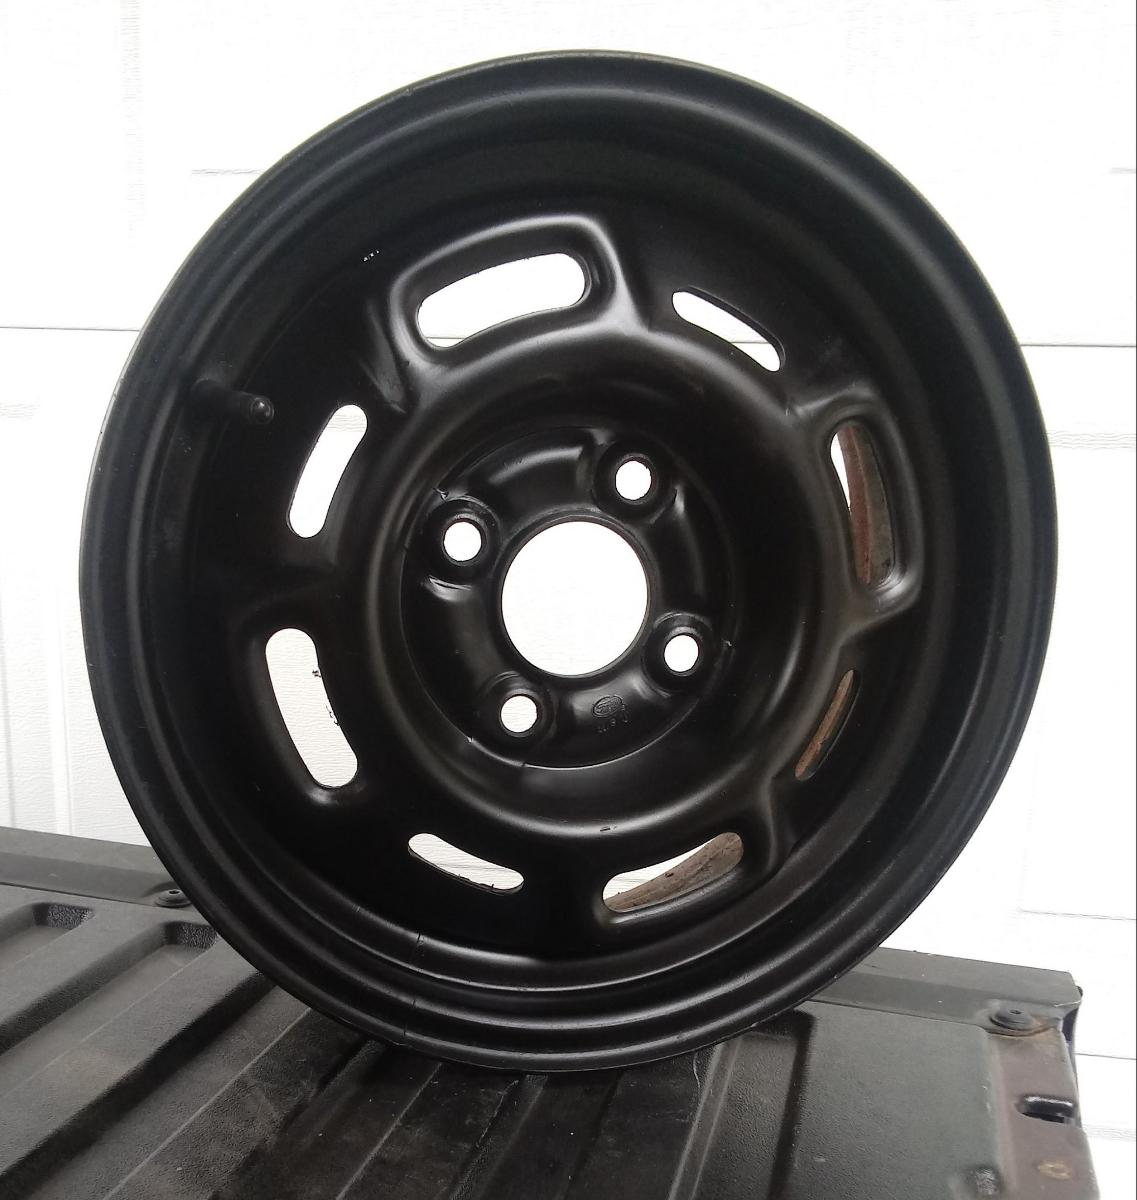 Mustang four hole 14 inch wheels (black)